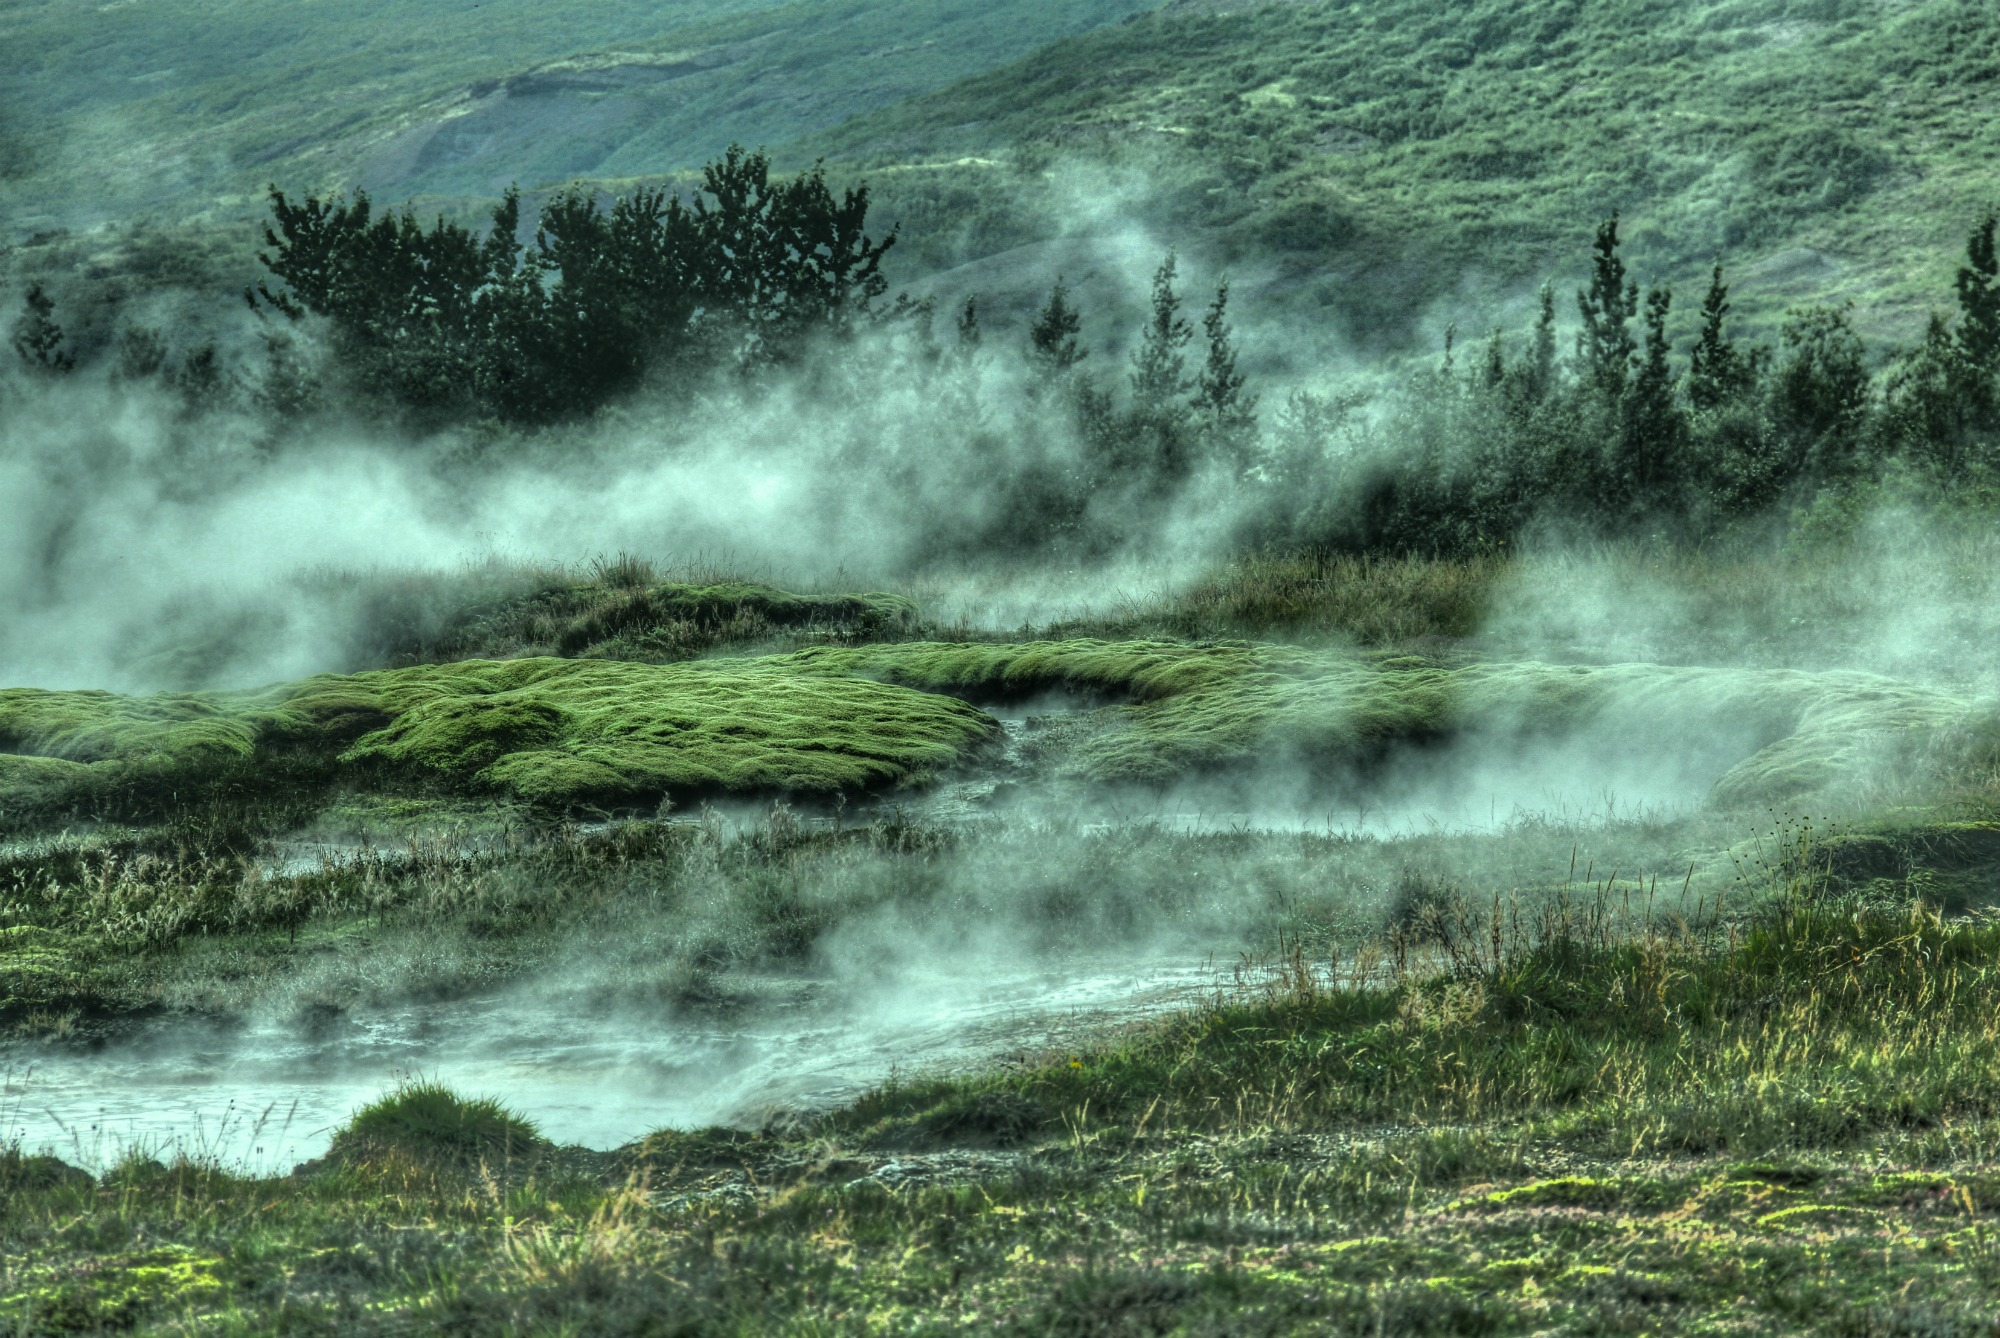 Strokkur Geyser, Iceland (Thought Questions 295-301)